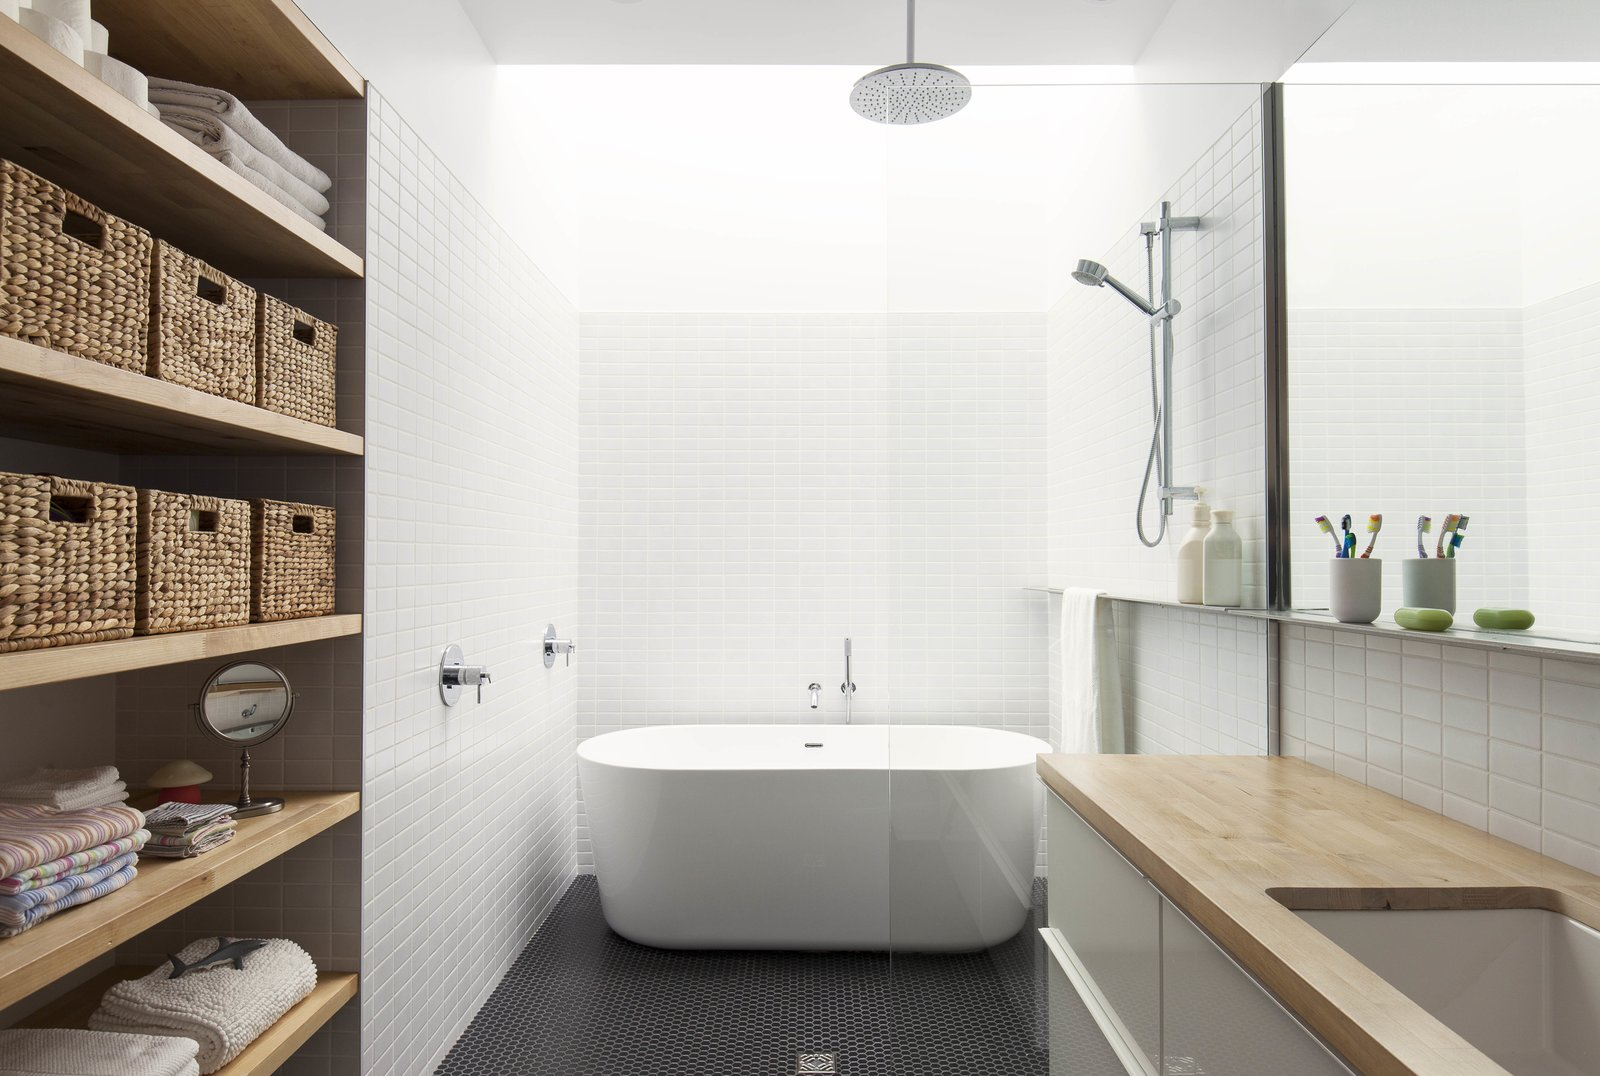 In the renovated bathroom, a freestanding bathtub sits beneath a skylight that runs the width of the room. A large mirror hangs above the vanity, which is outfitted with a butcher-block countertop. Black mosaic tiles were used on the floor.